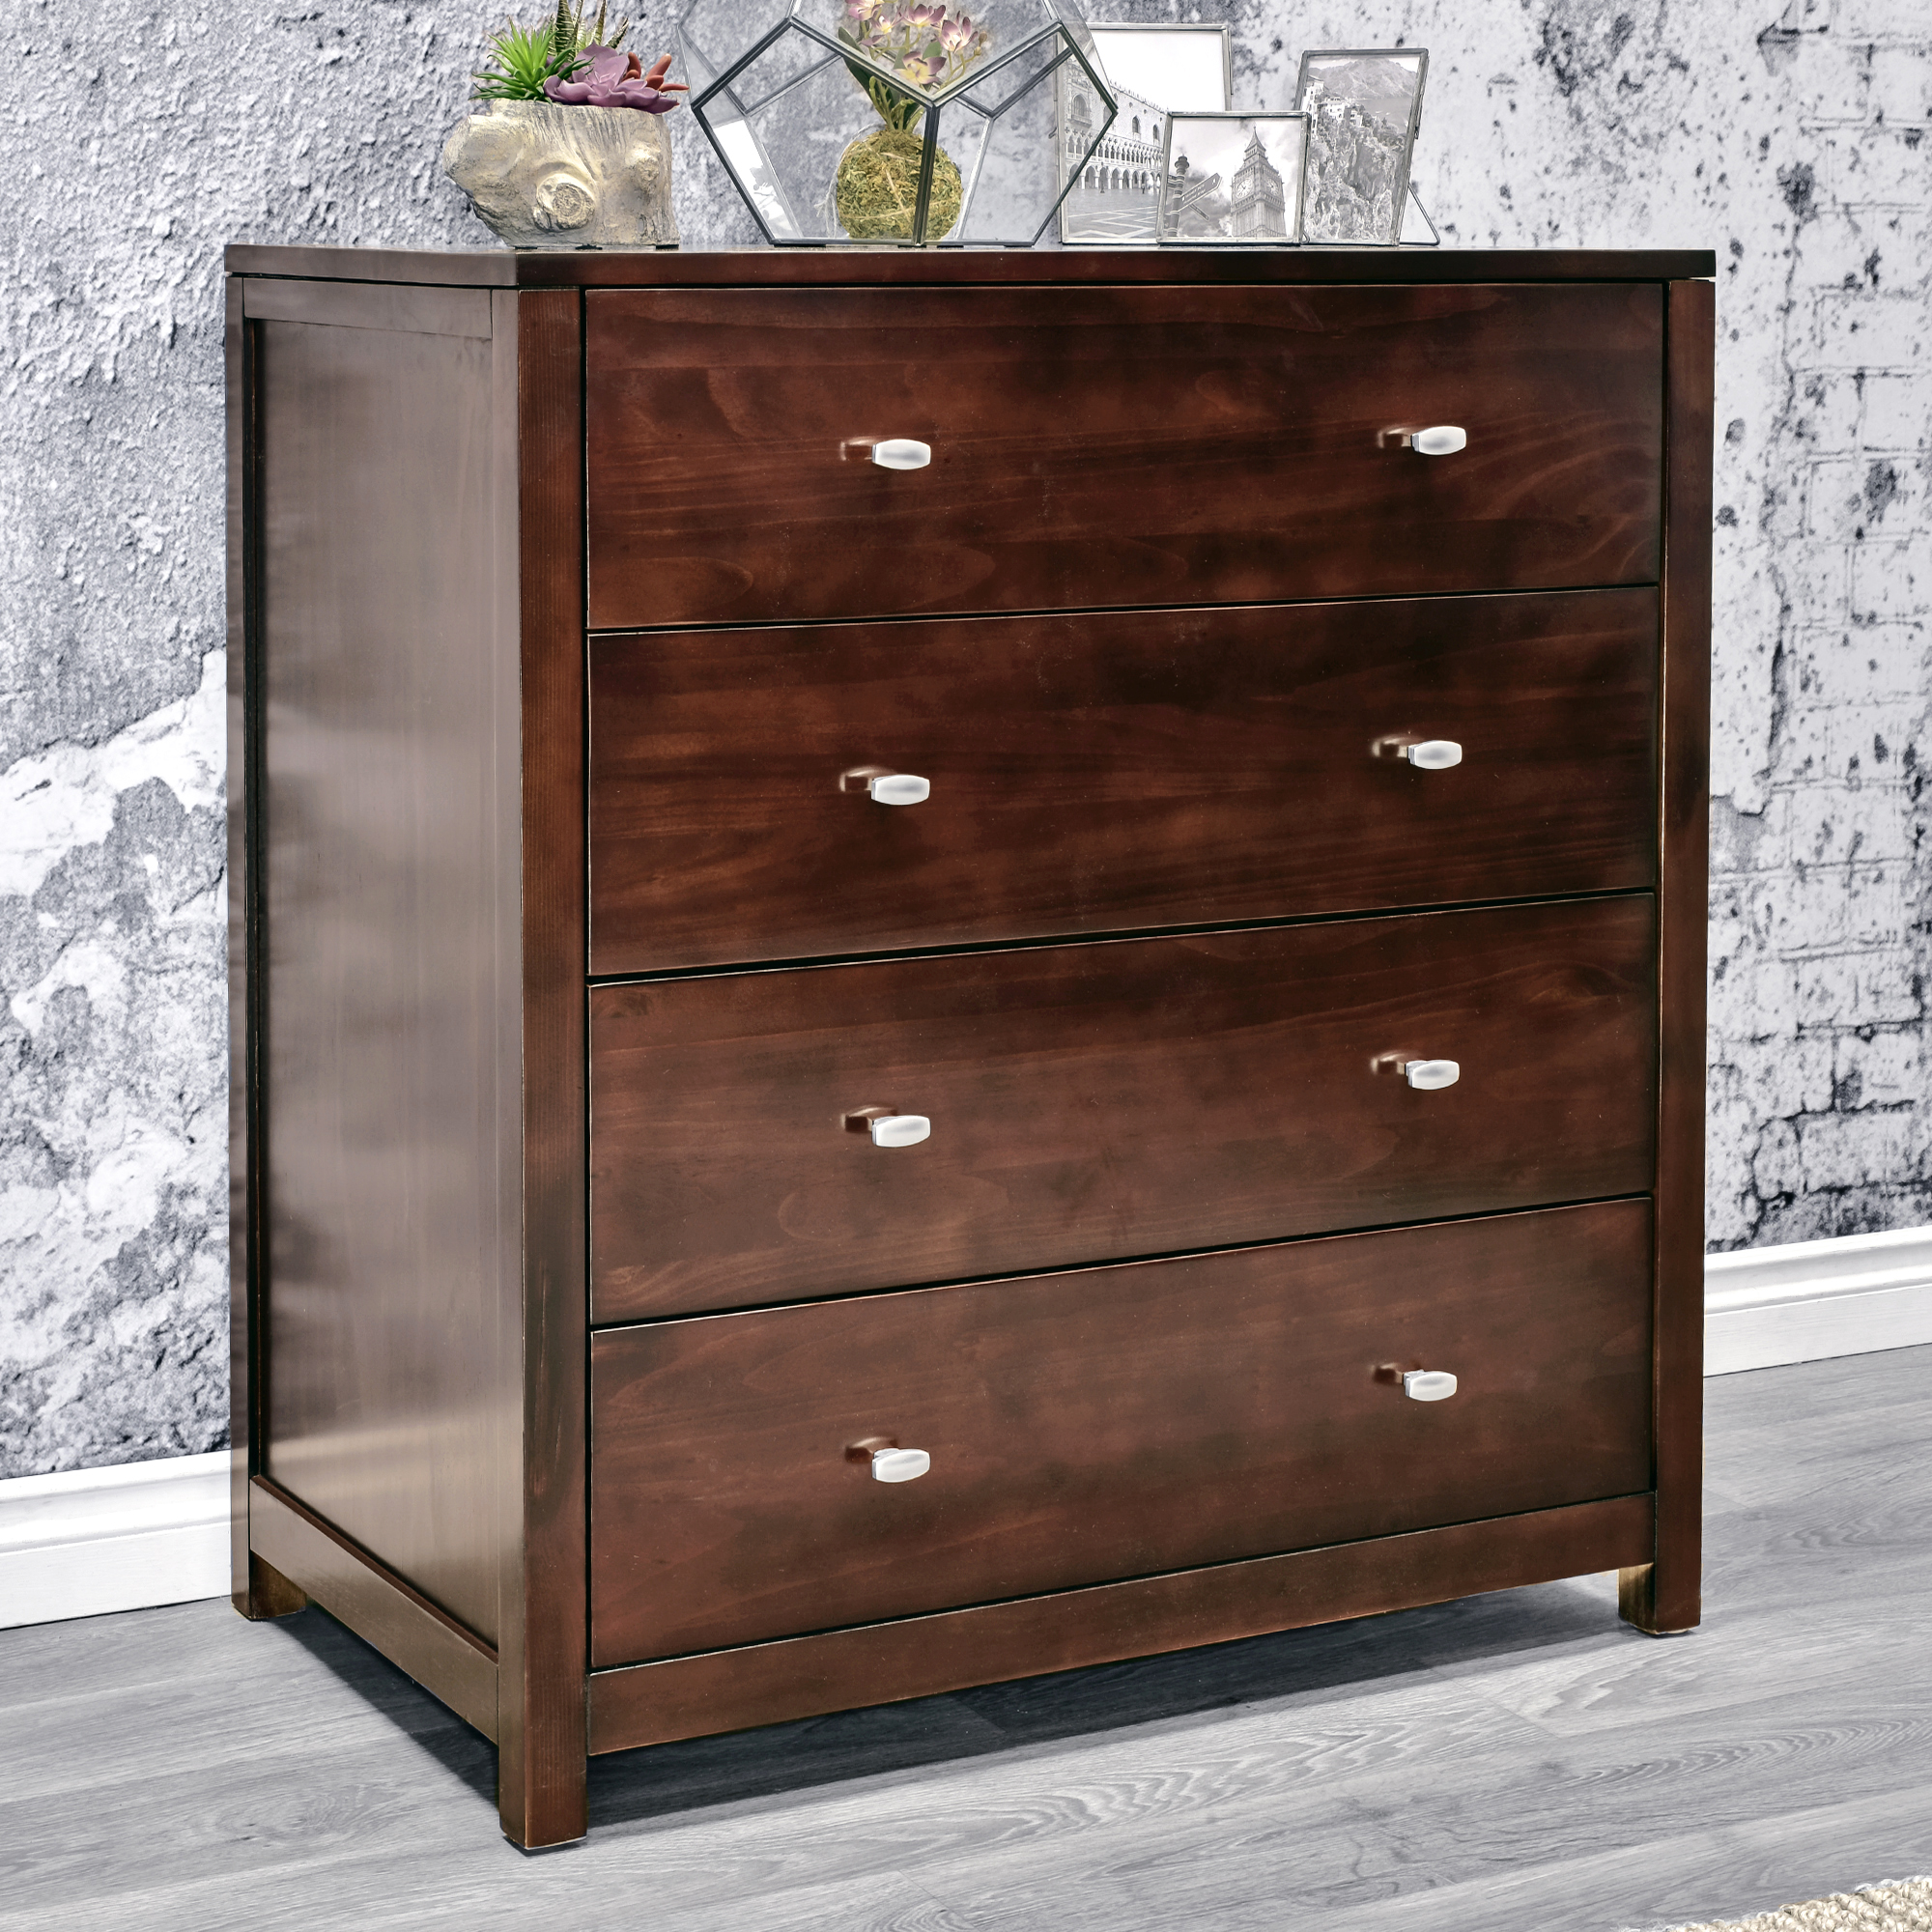 messina interior drawer product furdes tall four drawers chest g